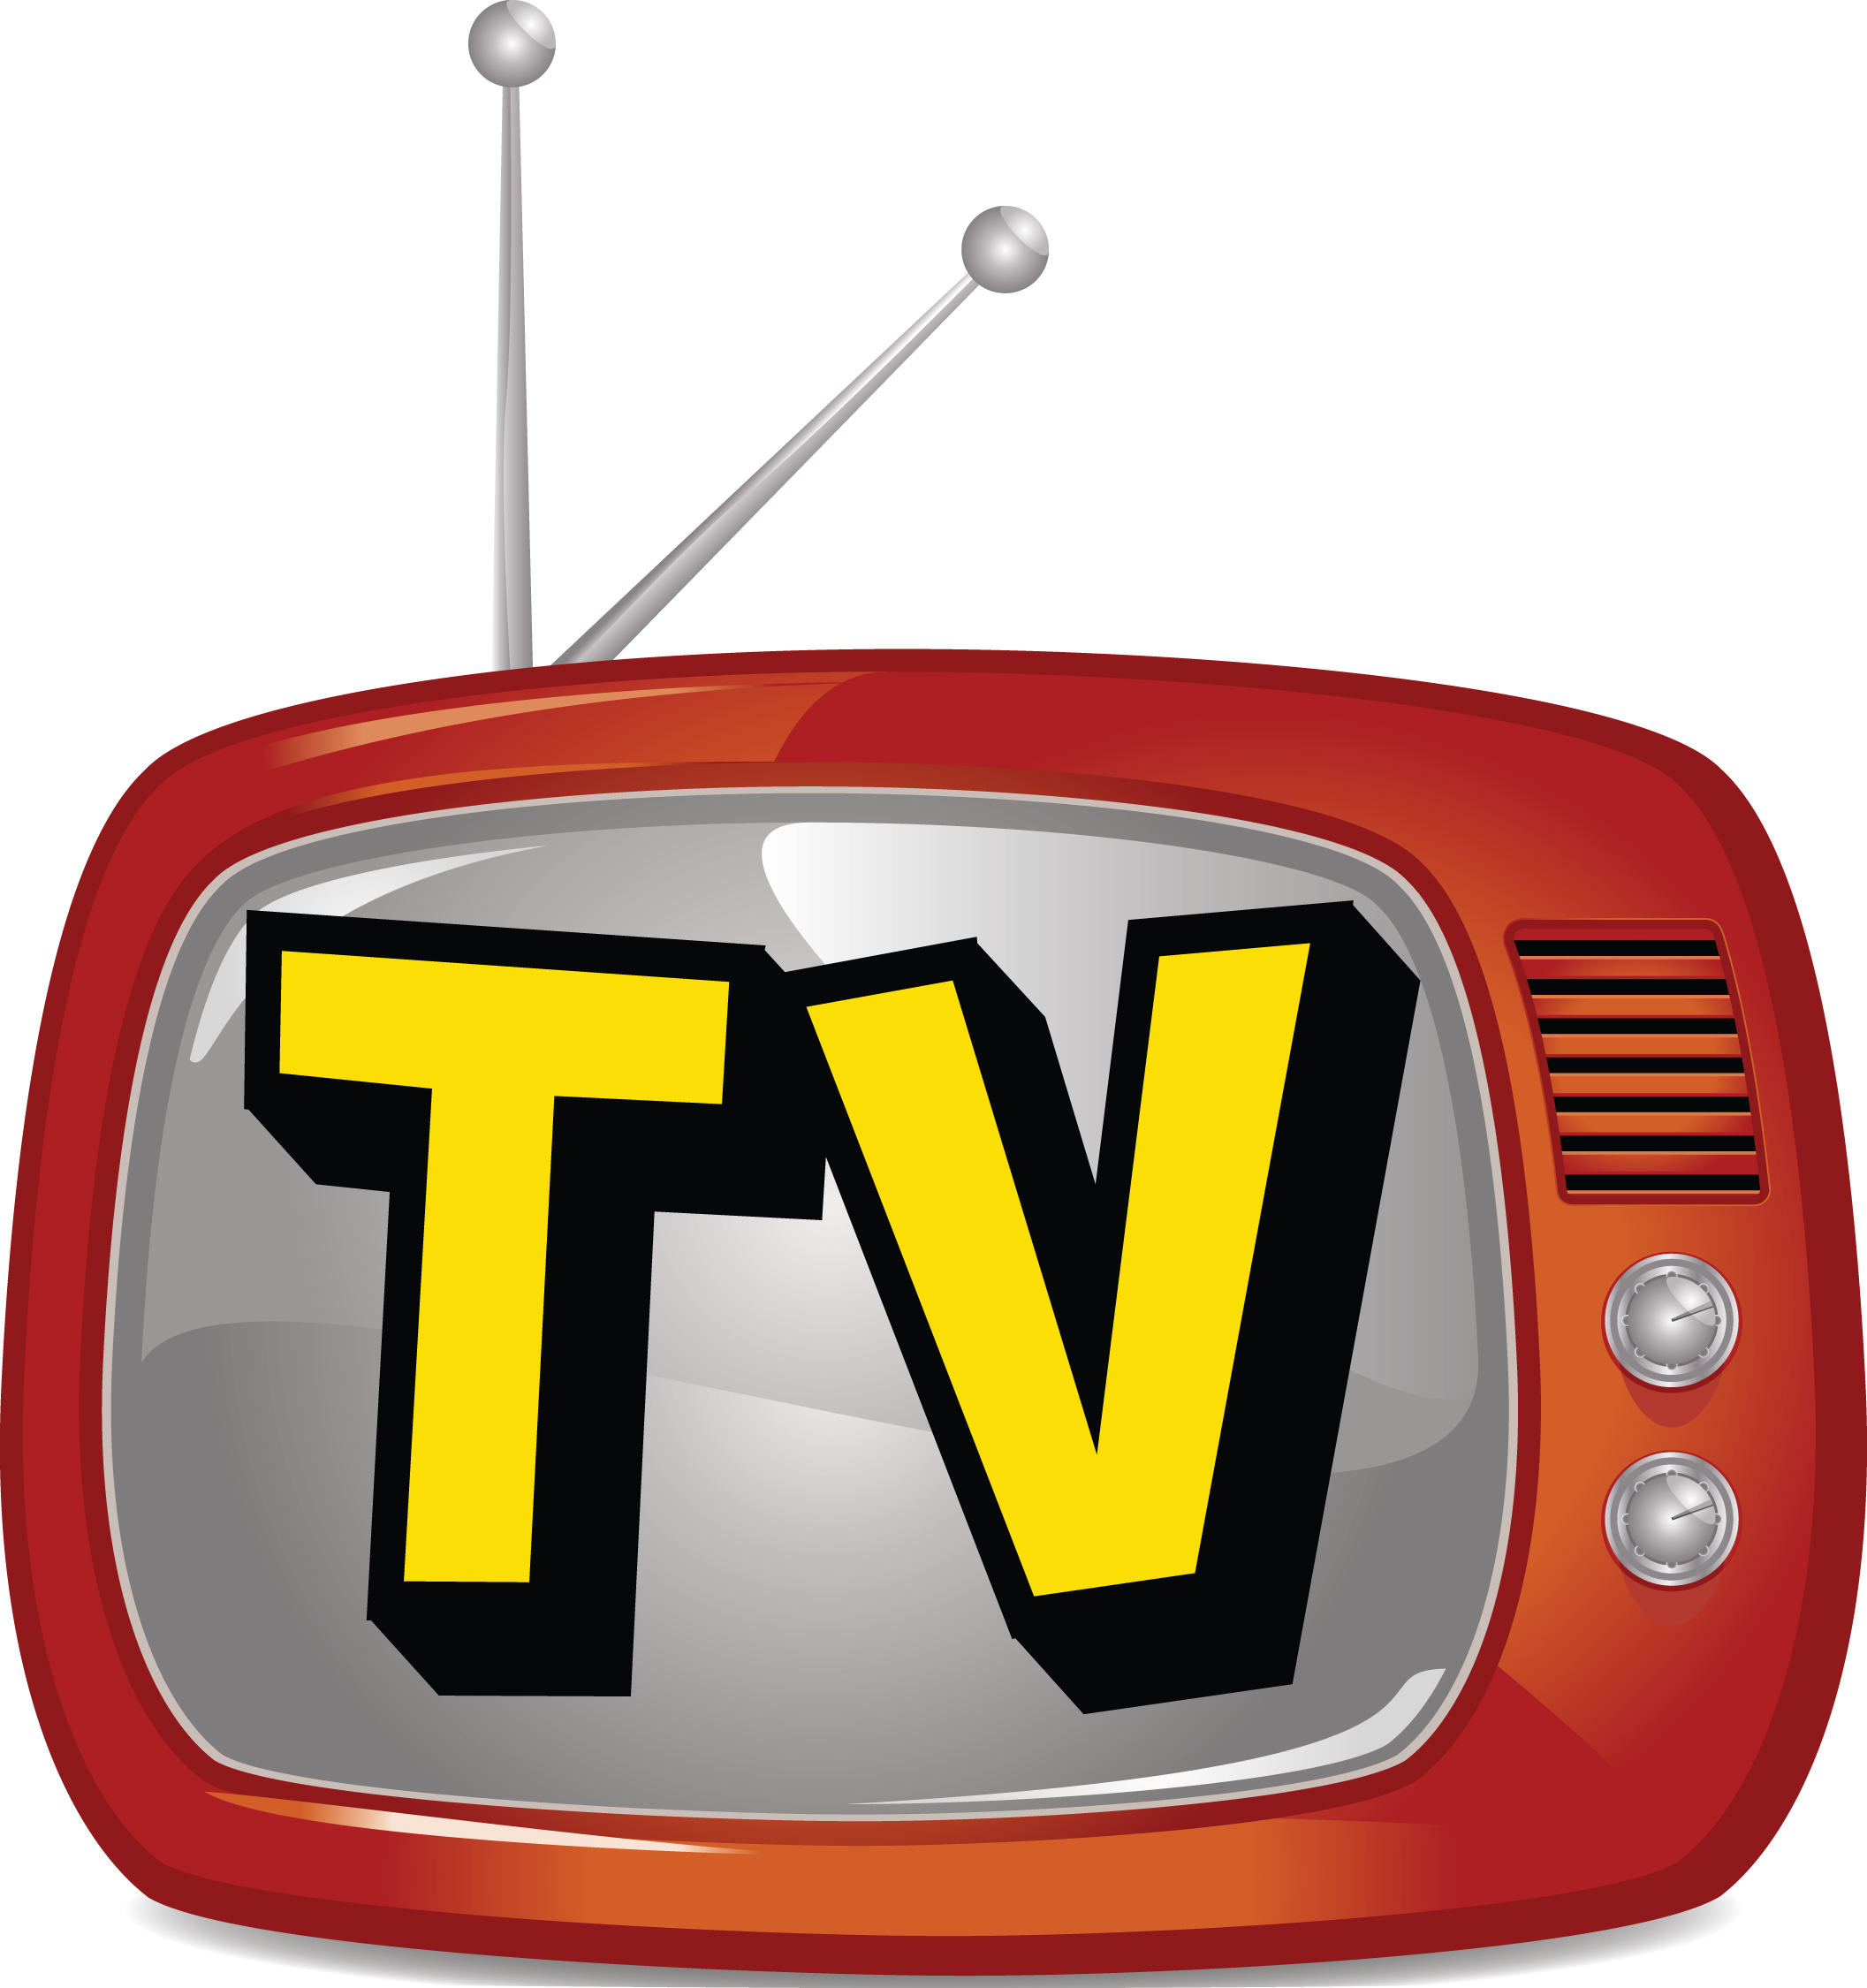 How to Watch Free HDTV Channels in Your Area with a Digital TV Antenna